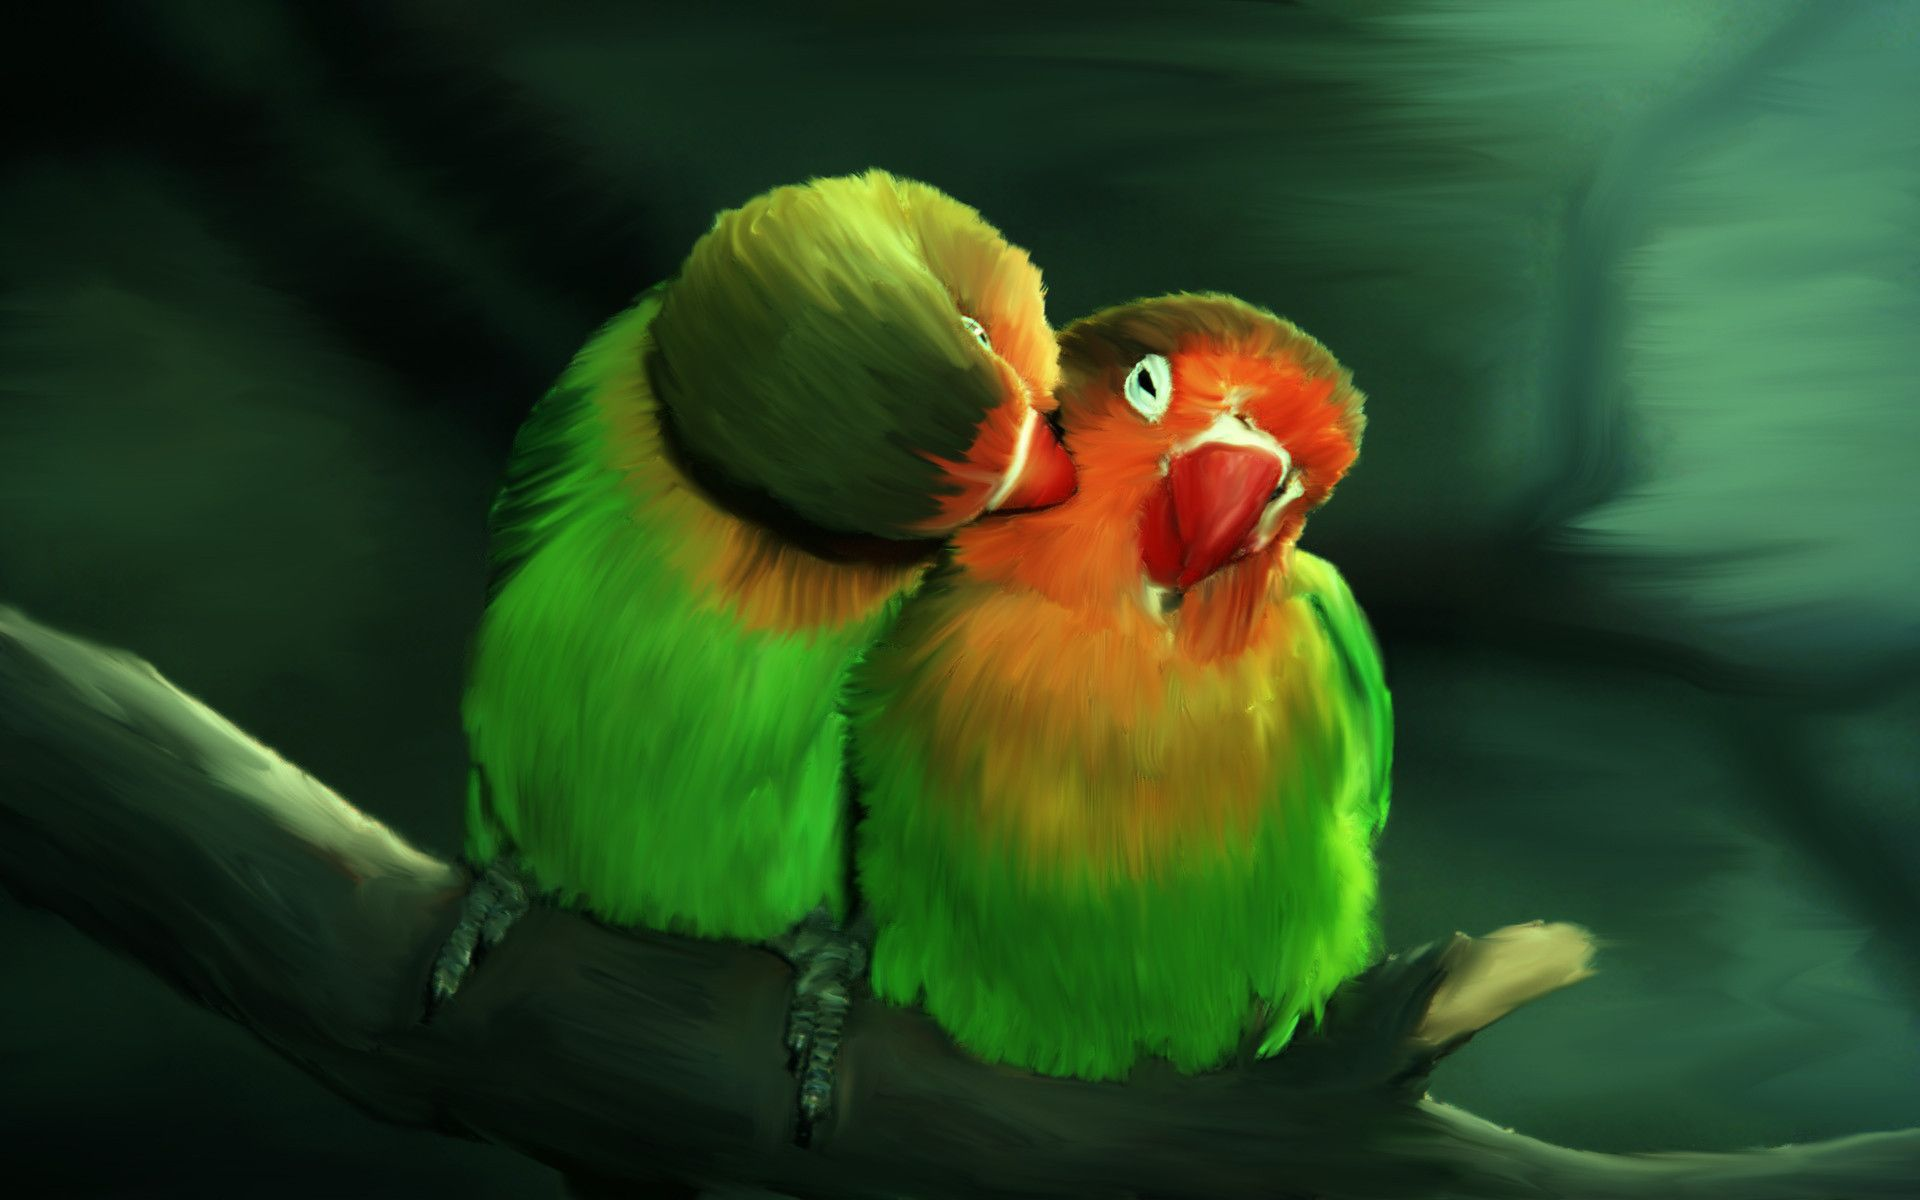 Love birds HD wallpapers, HD Desktop Wallpapers 1920x1200